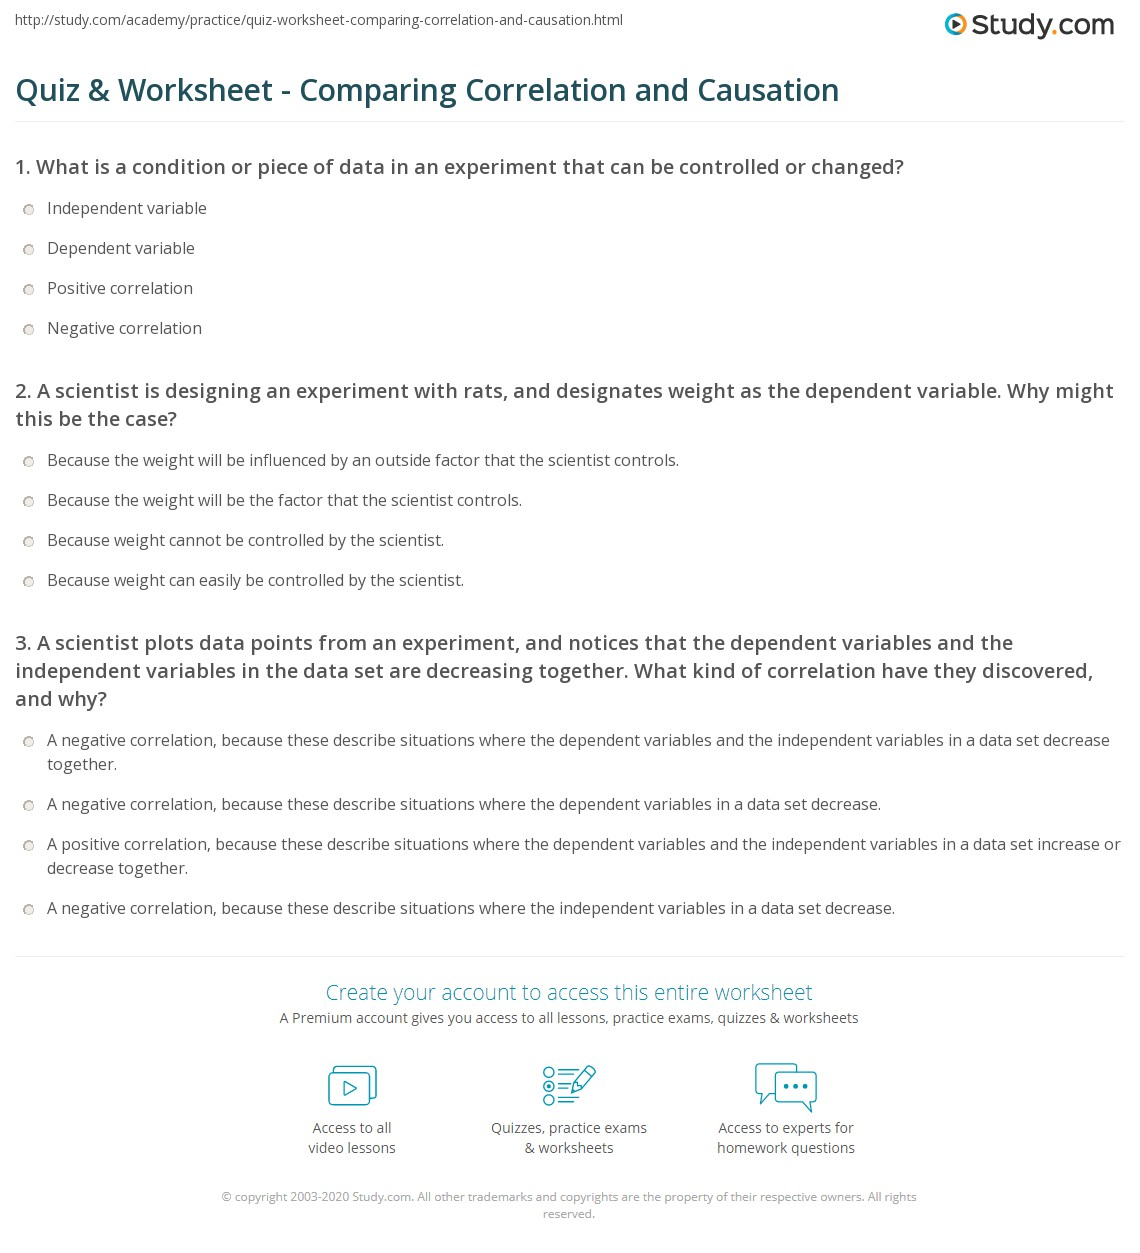 Aldiablosus  Pleasing Quiz Amp Worksheet  Comparing Correlation And Causation  Studycom With Great Print Correlation Vs Causation Differences Amp Definition Worksheet With Easy On The Eye Math Properties Worksheet Also Music Worksheets For Kids In Addition Law Of Conservation Of Mass Worksheet And Presidents Day Worksheets As Well As Division With Decimals Worksheets Additionally Dividing Polynomials Worksheet Answers From Studycom With Aldiablosus  Great Quiz Amp Worksheet  Comparing Correlation And Causation  Studycom With Easy On The Eye Print Correlation Vs Causation Differences Amp Definition Worksheet And Pleasing Math Properties Worksheet Also Music Worksheets For Kids In Addition Law Of Conservation Of Mass Worksheet From Studycom